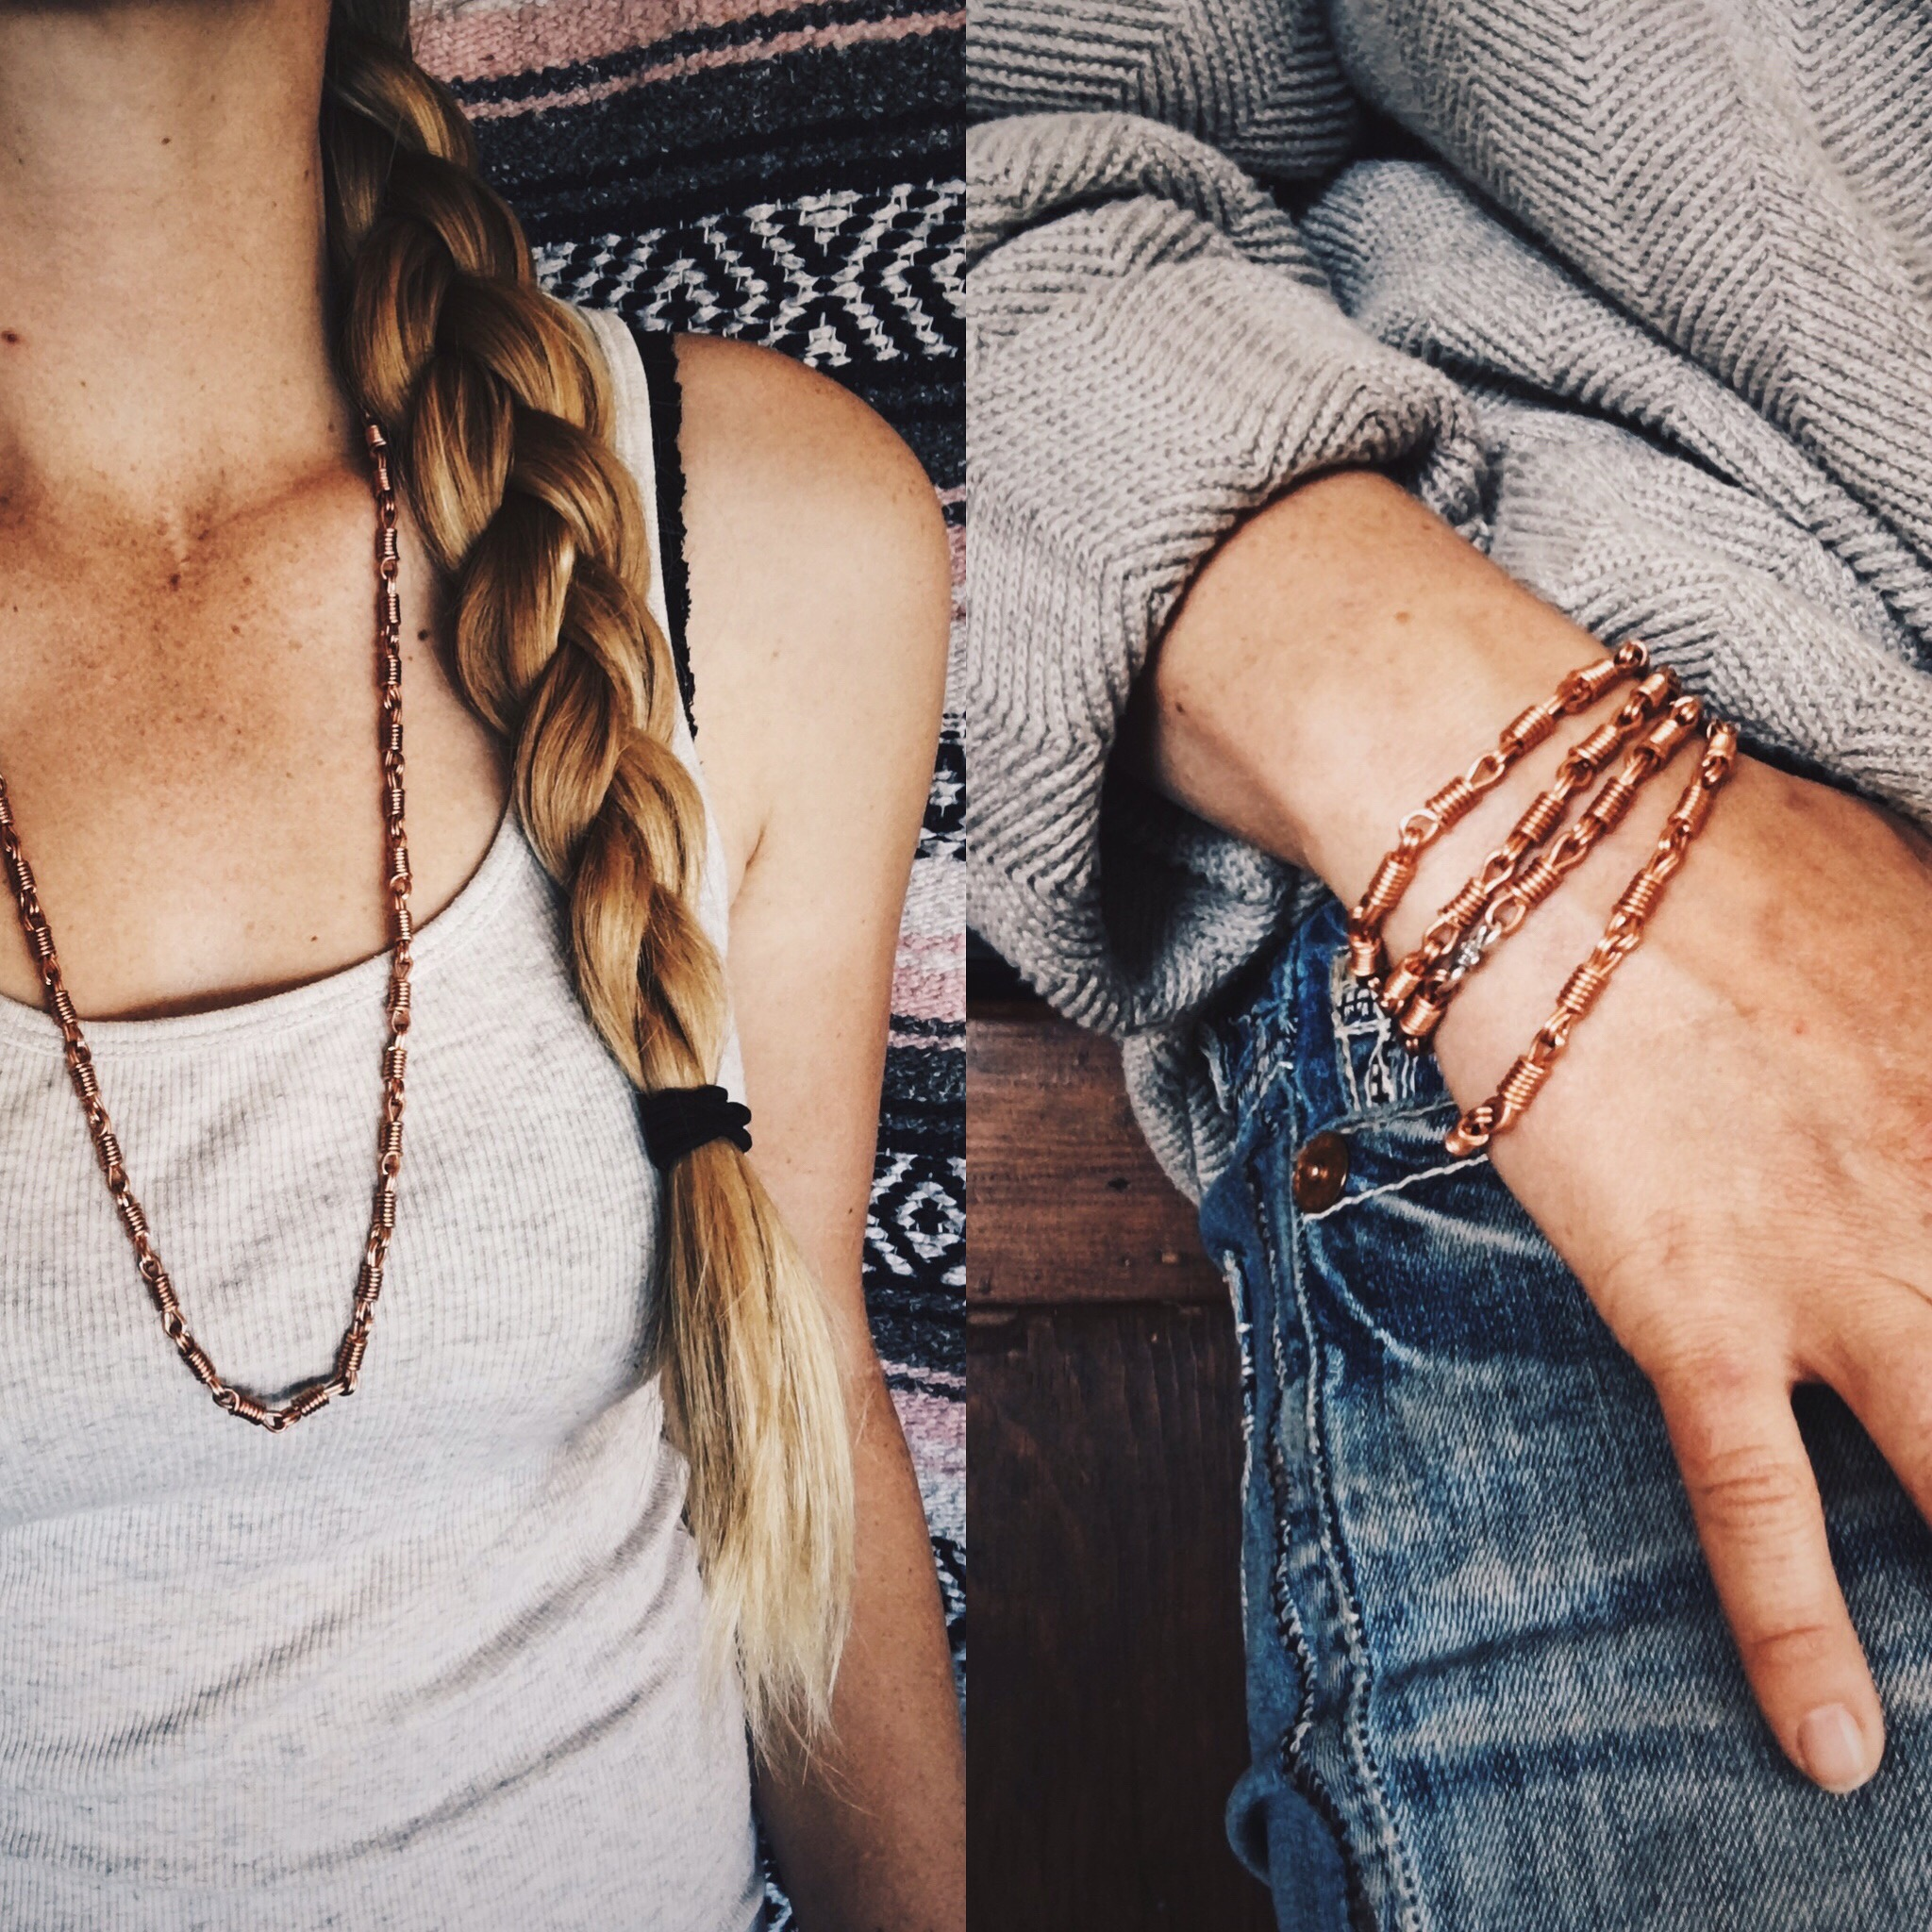 Ceily Rae Photography & Design Products Copper Rein Chain Necklace/ Bracelet